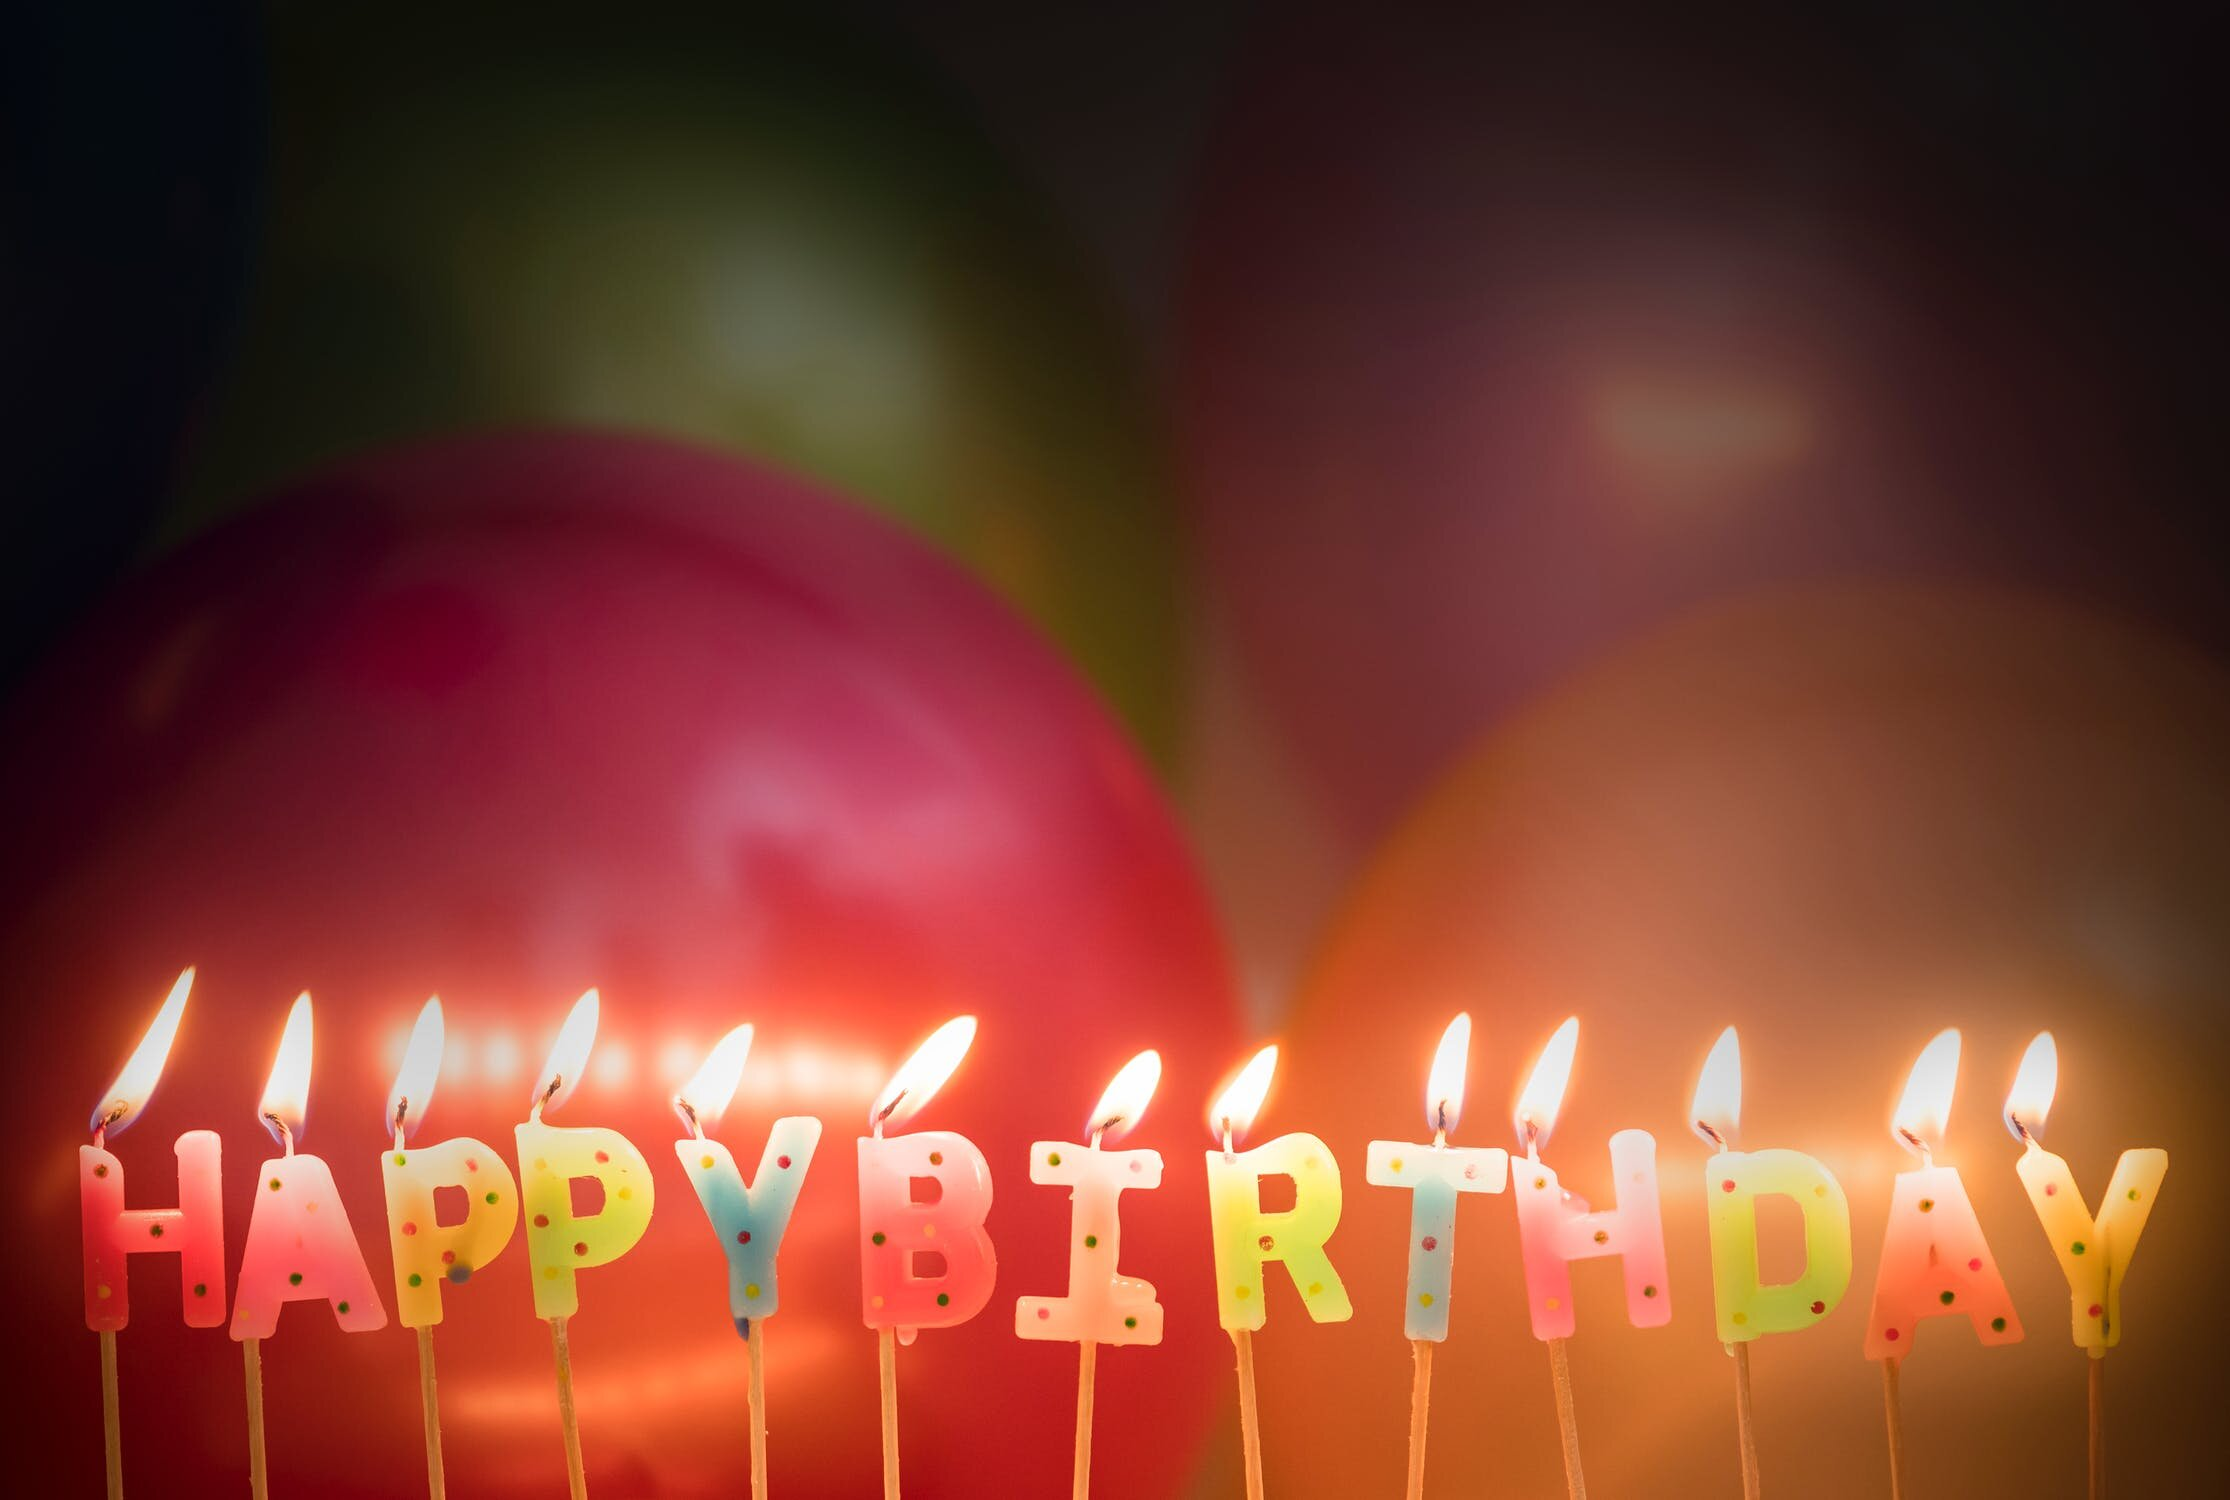 Donate your Birthday - It's easy. Instead of gifts, you can ask for donations to support our work. Check out how you can fundraise for us from the very heart of your home!